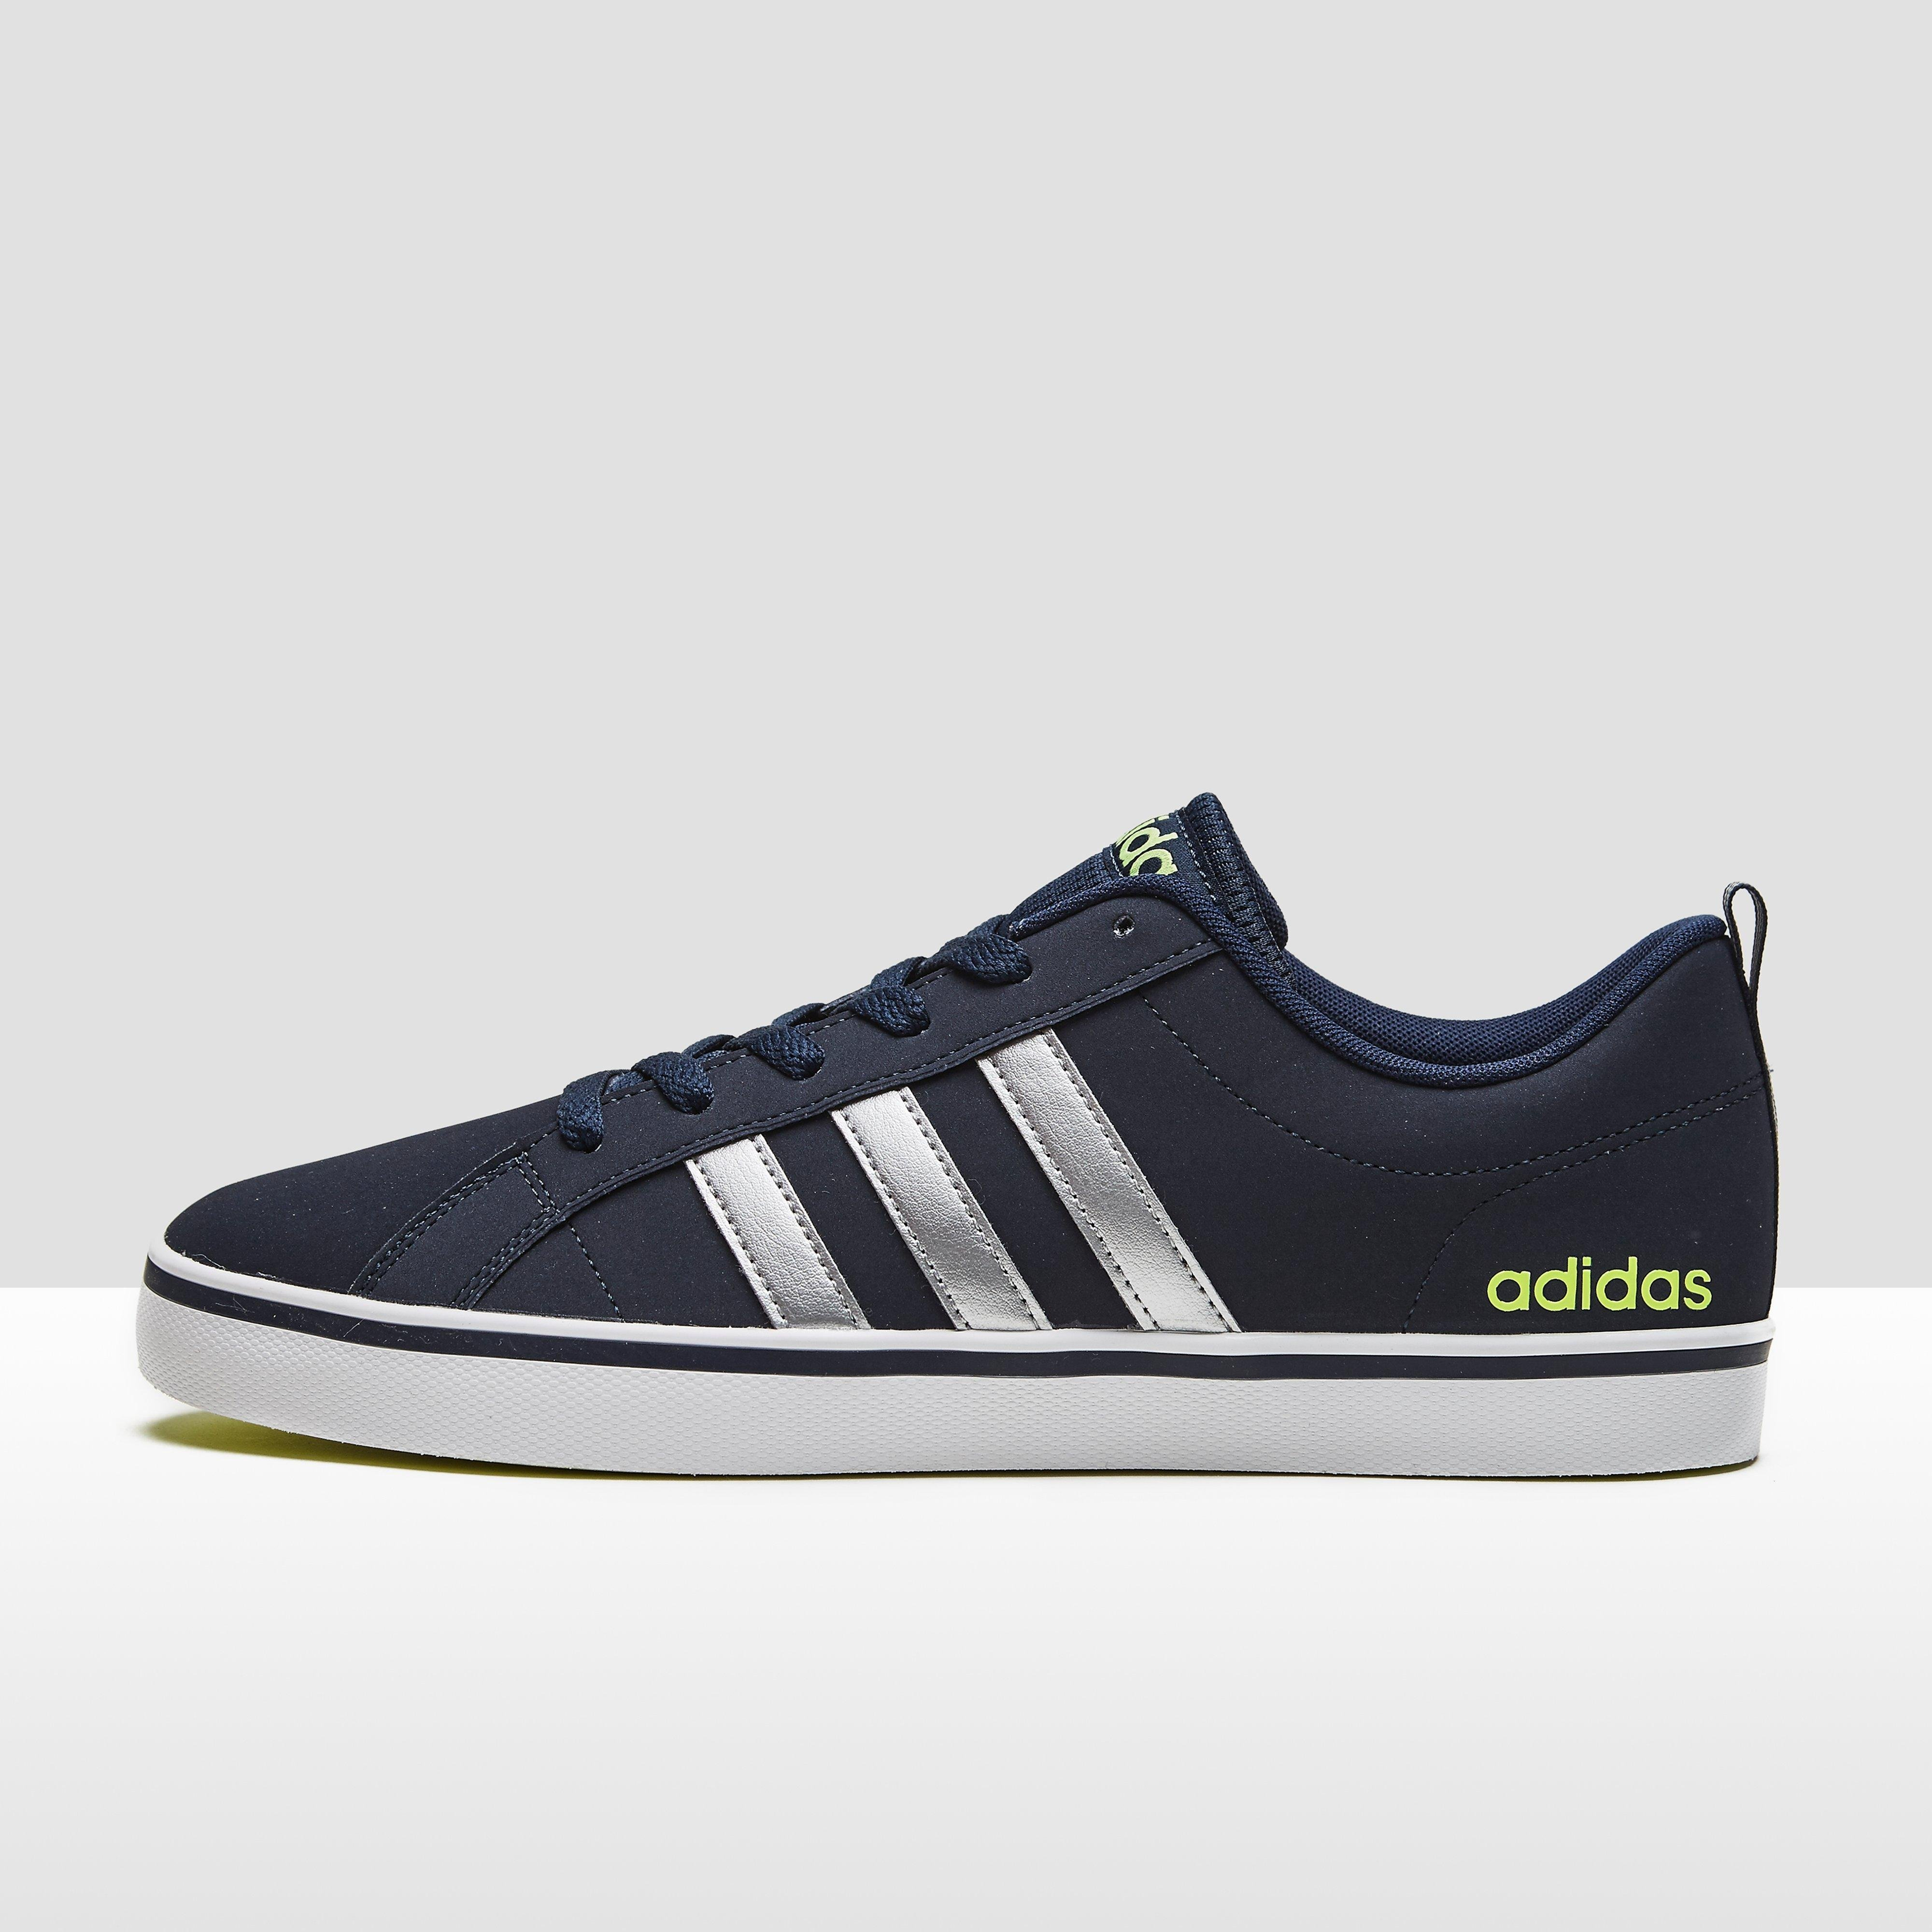 Adidas Chaussures Pour Hommes 2XjBzaMp